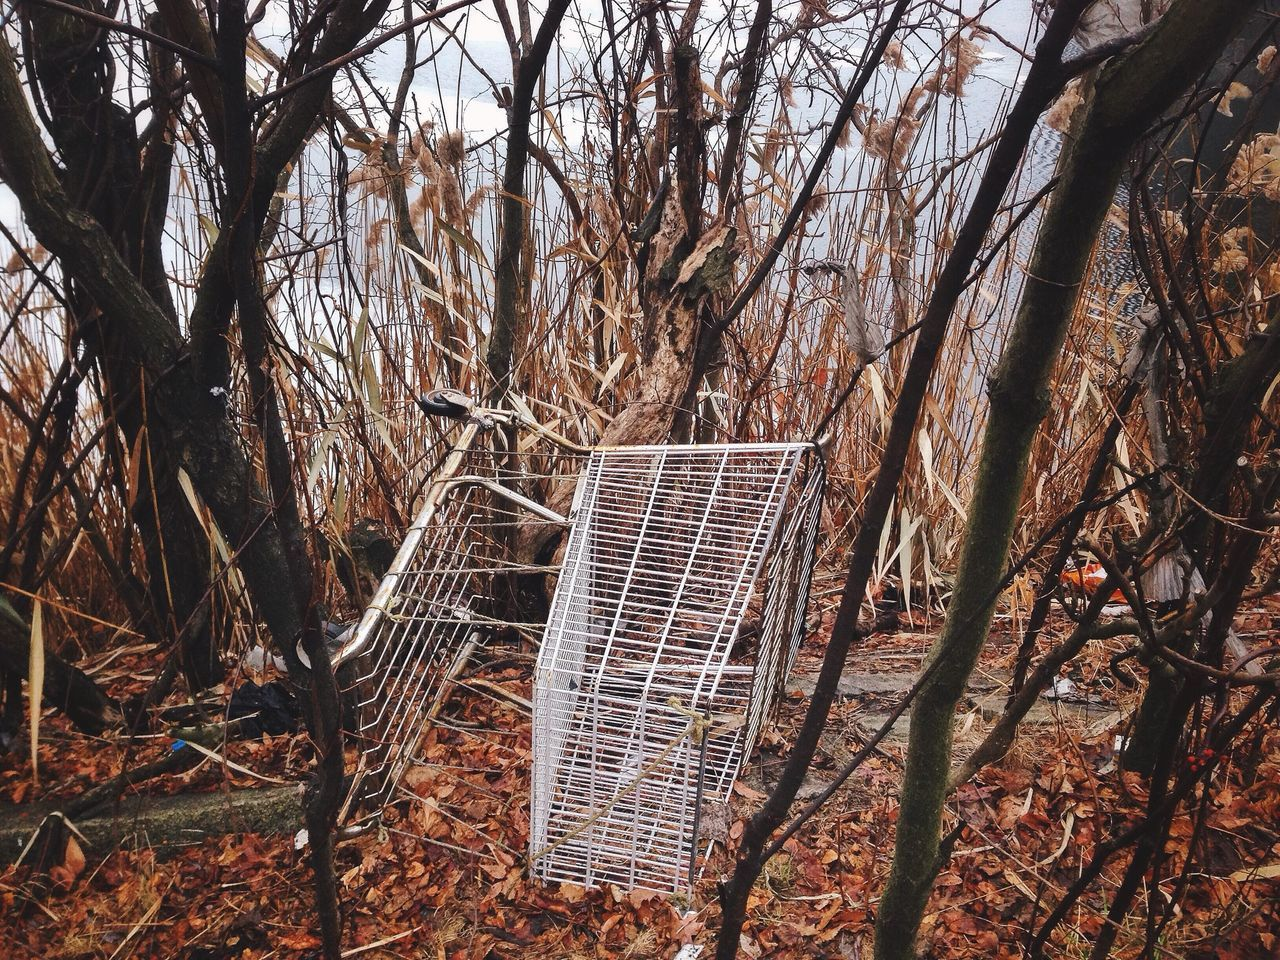 Shopping cart in a forest